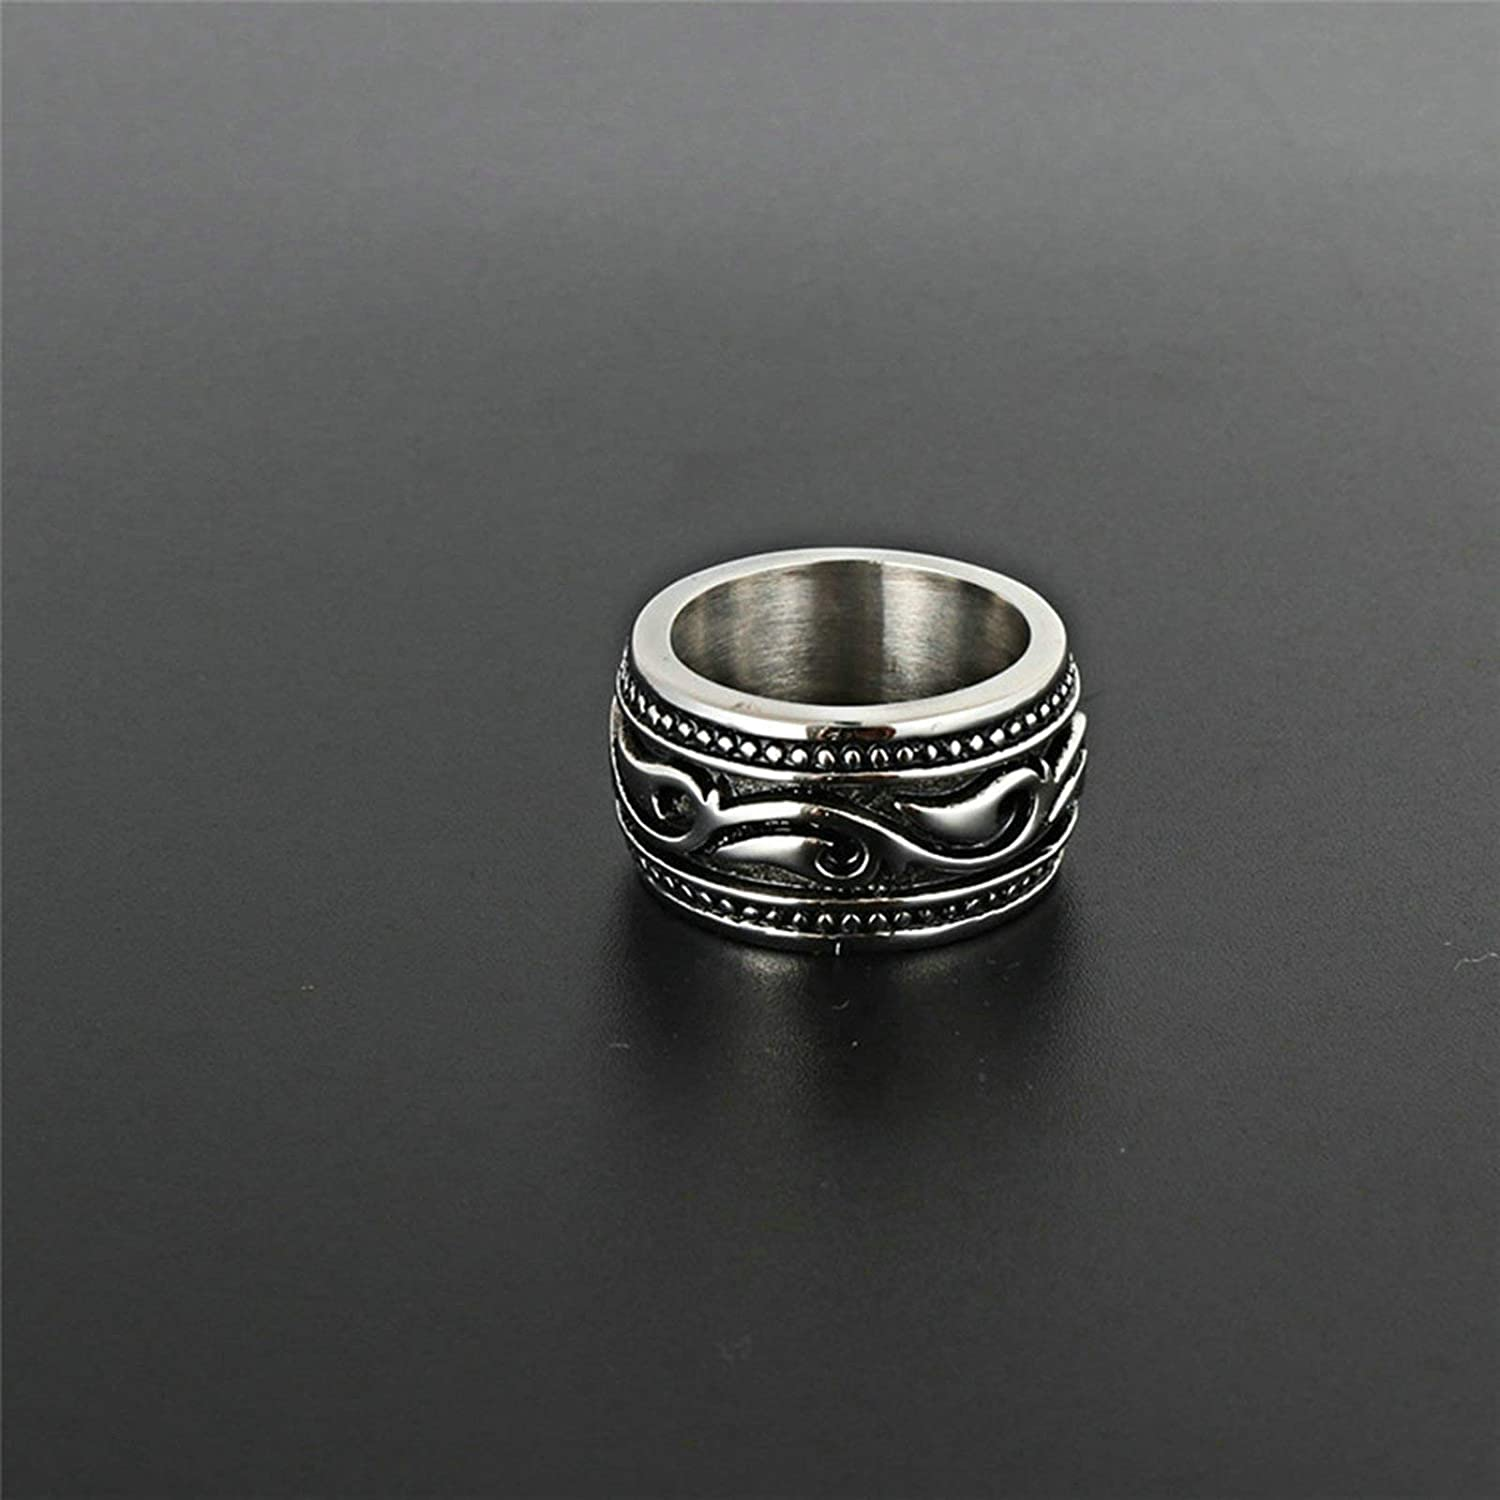 Aooaz Stainless Steel Class Rings Wave Shaped Finger Ring for Boy